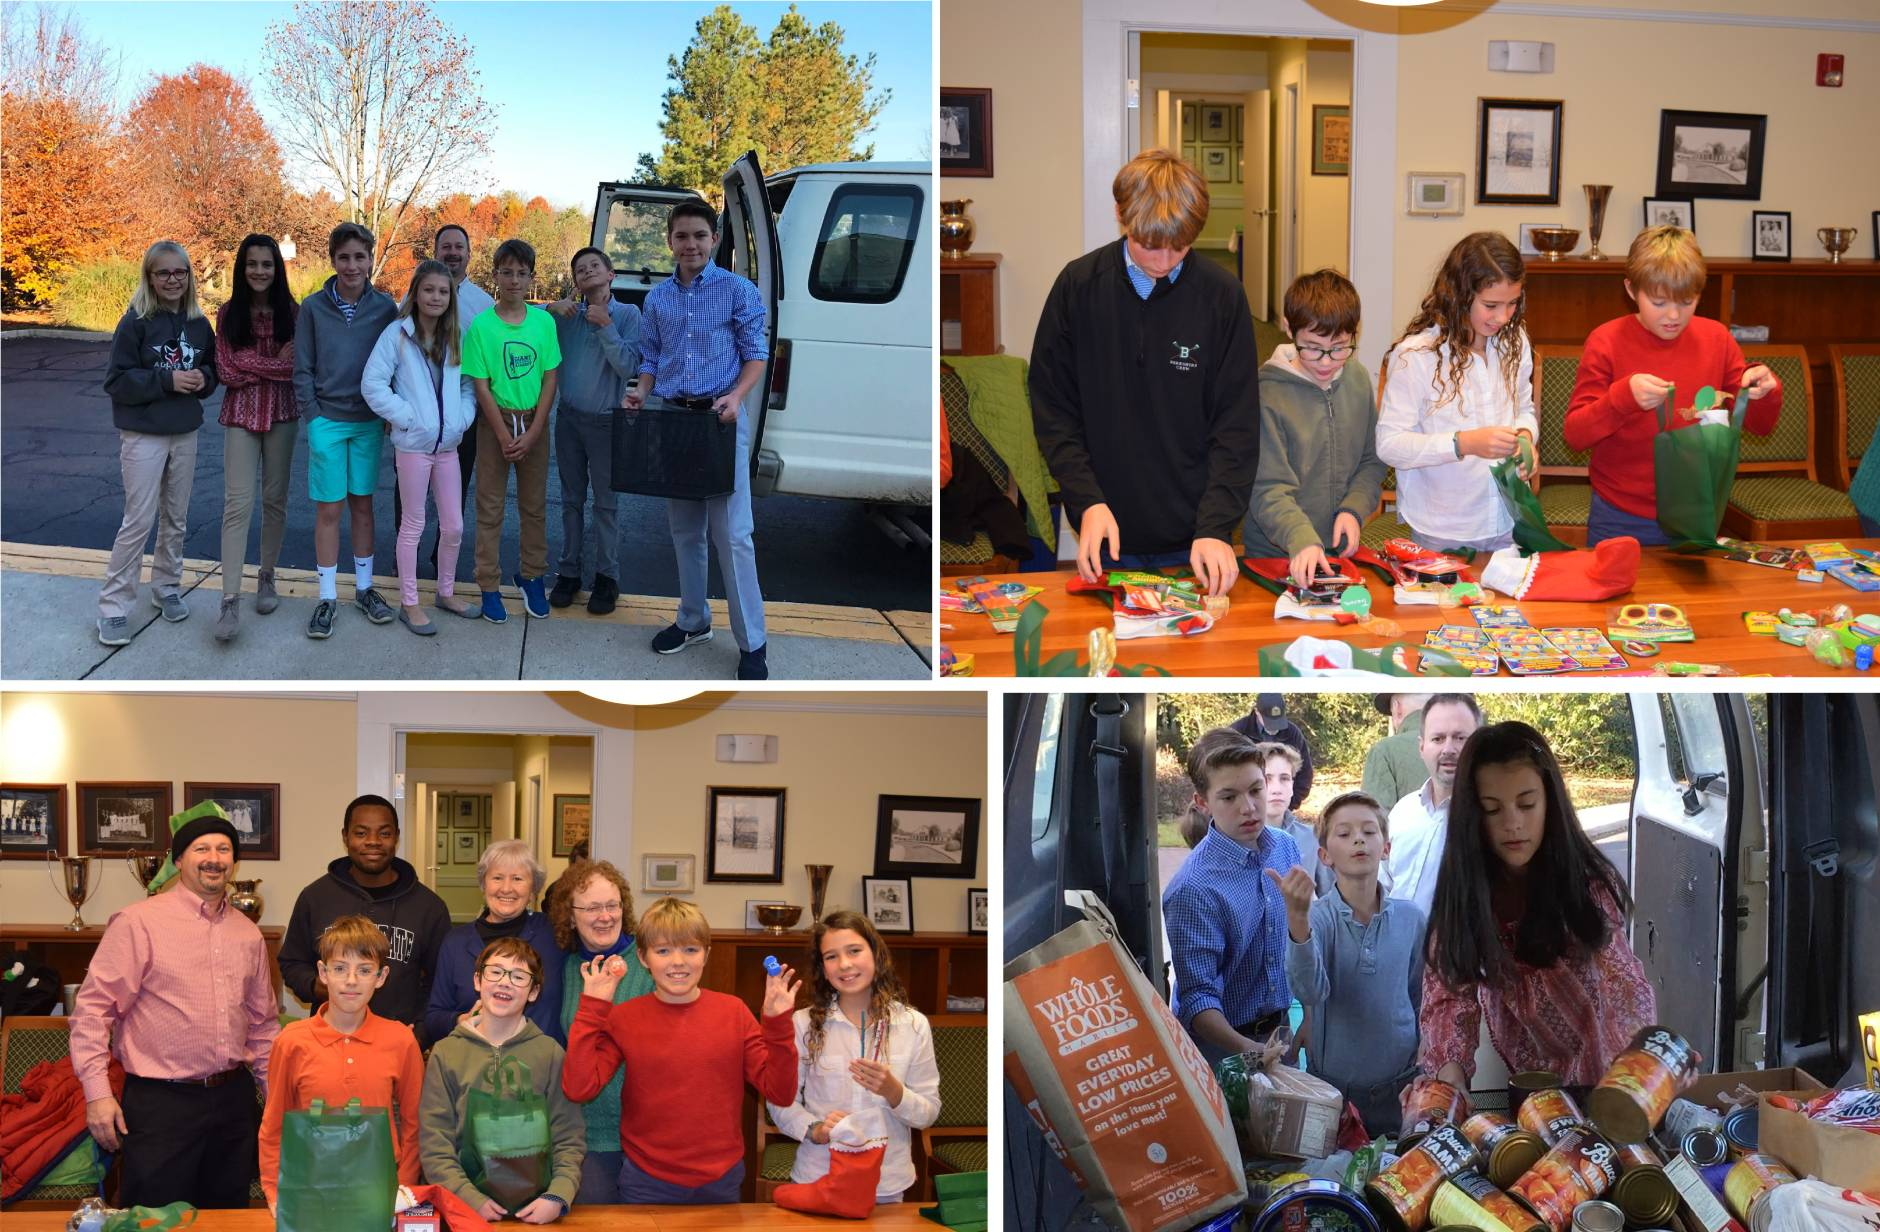 The Hill School of Middleburg's Student Council led two school-wide efforts during this holiday season. The Thanksgiving Food drive resulted in over 500 pounds of food that was donated to the Seven Loaves Food Pantry. (Courtesy Kelly Johnson)